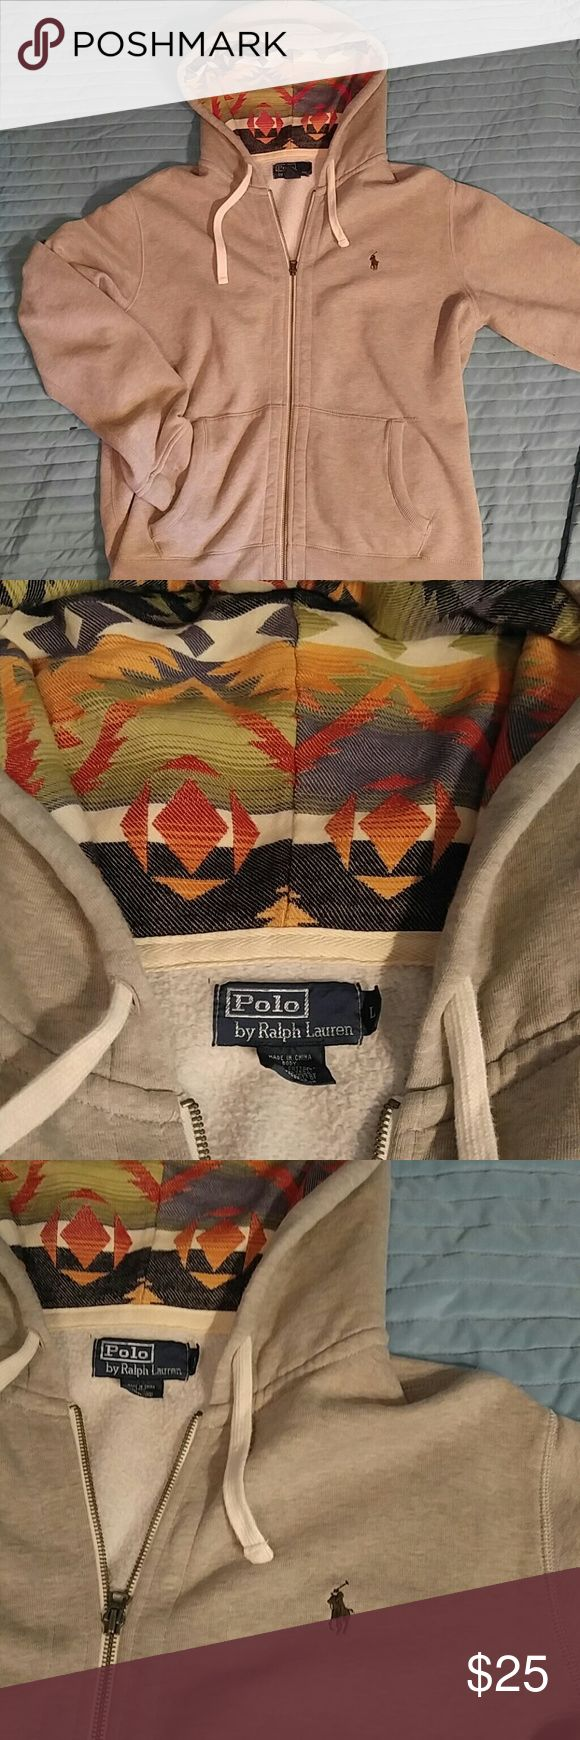 Polo by Ralph Lauren grey zip up hoodie L Beautiful item made by Ralph Lauren. Grey zip up hoodie featuring green polo horse and super fresh tribal pattern in the good. Very nice condition! Polo by Ralph Lauren Shirts Sweatshirts & Hoodies